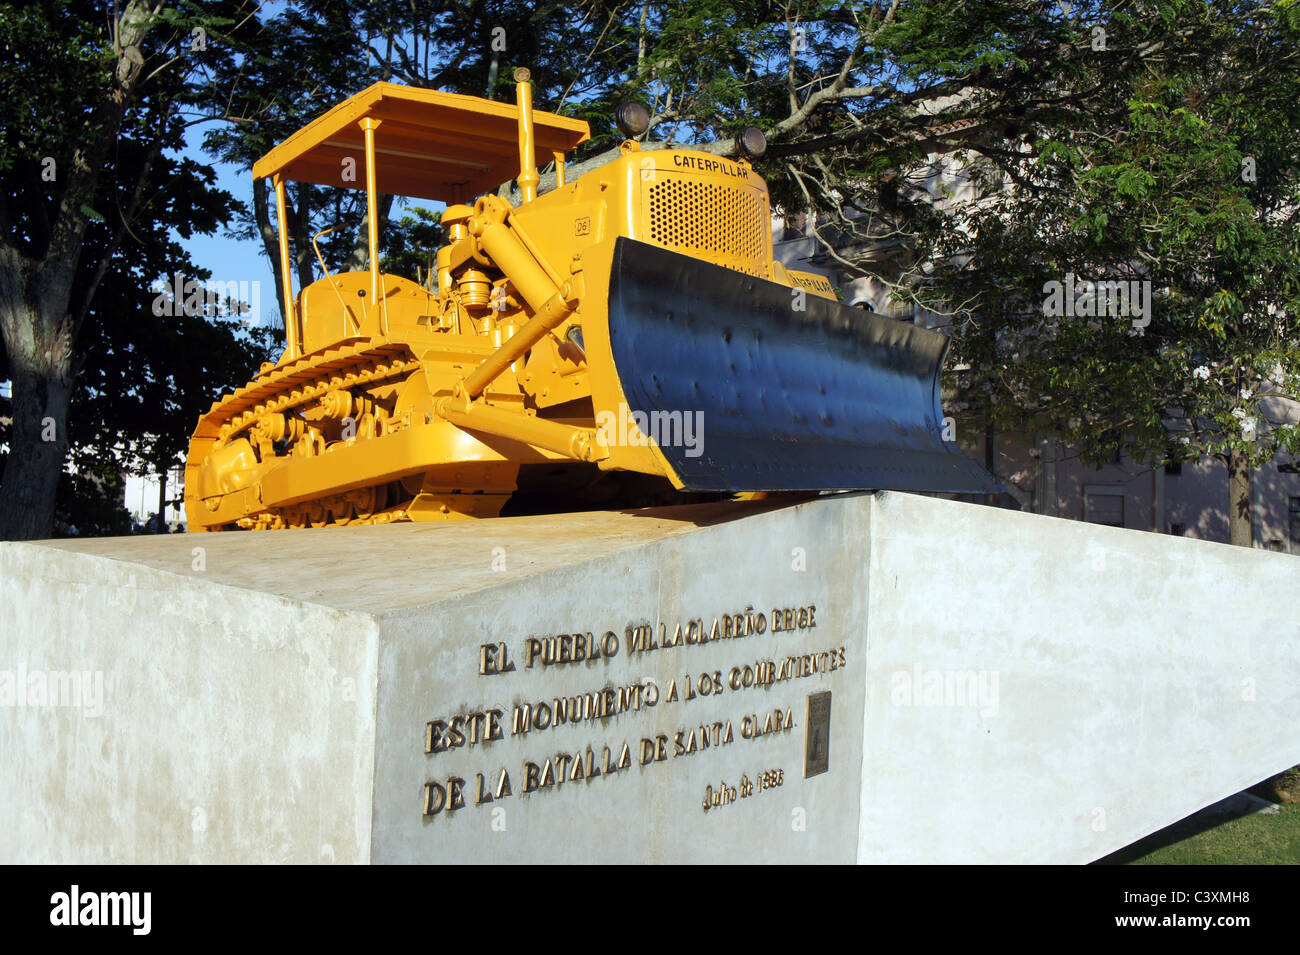 Yellow Caterpillar bulldozer used by Che Guevara to derail an armoured train at battle of Santa Clara in the Cuban - Stock Image